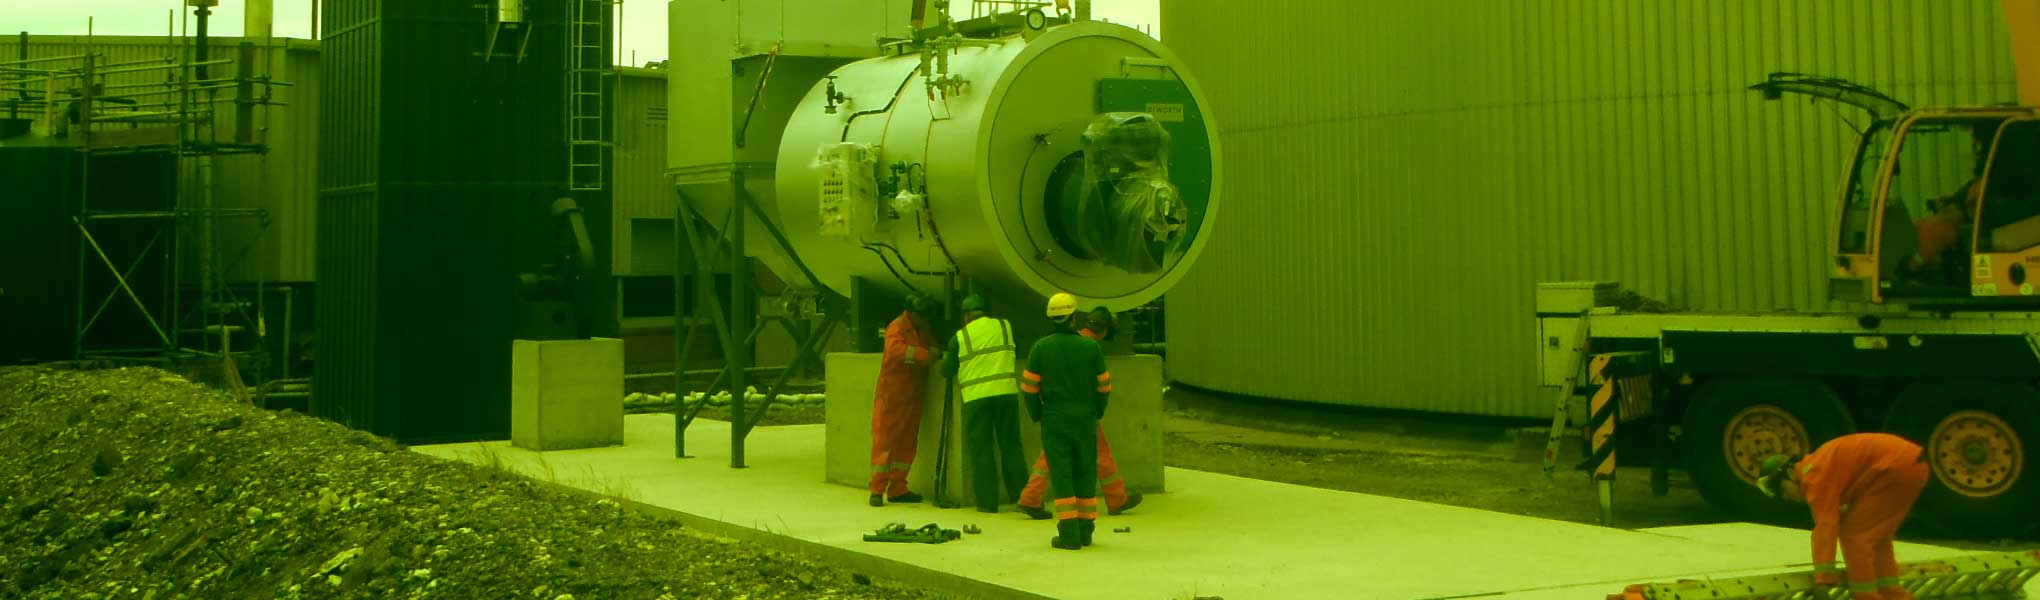 Boiler installation at Immingham